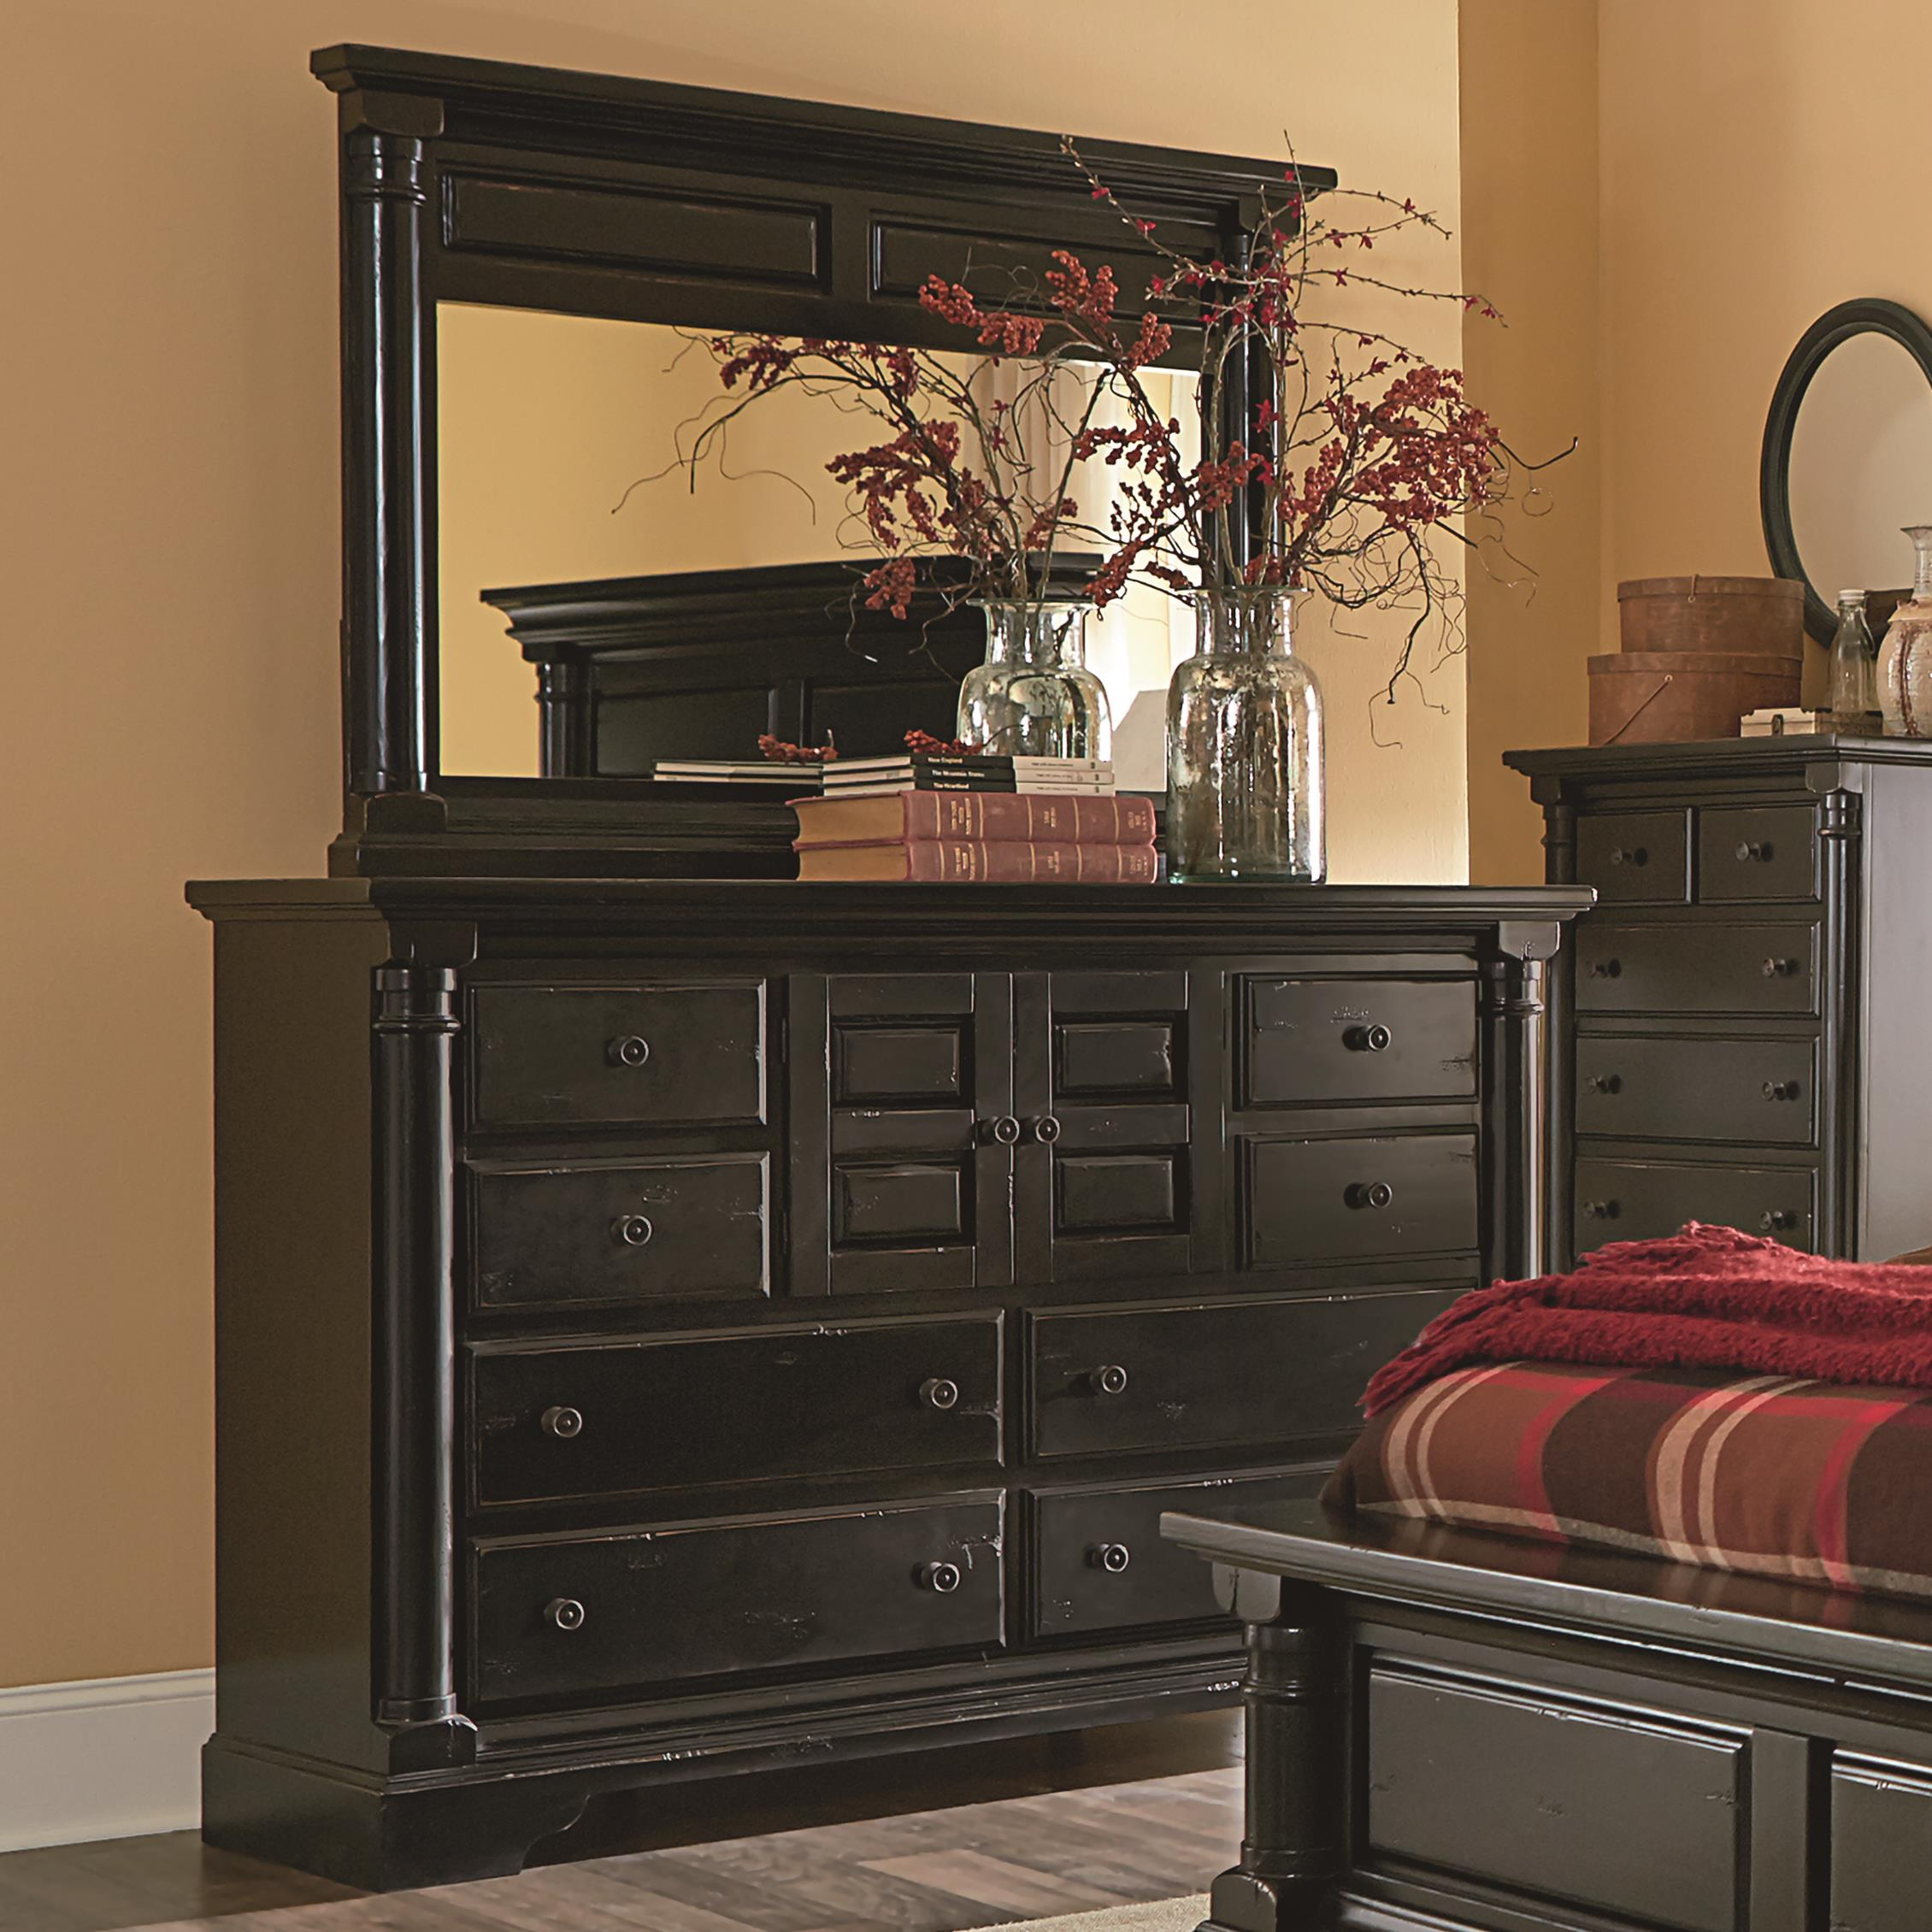 Progressive Furniture Gramercy Park Traditional Dresser With Panel Doors And Drawers And Mirror